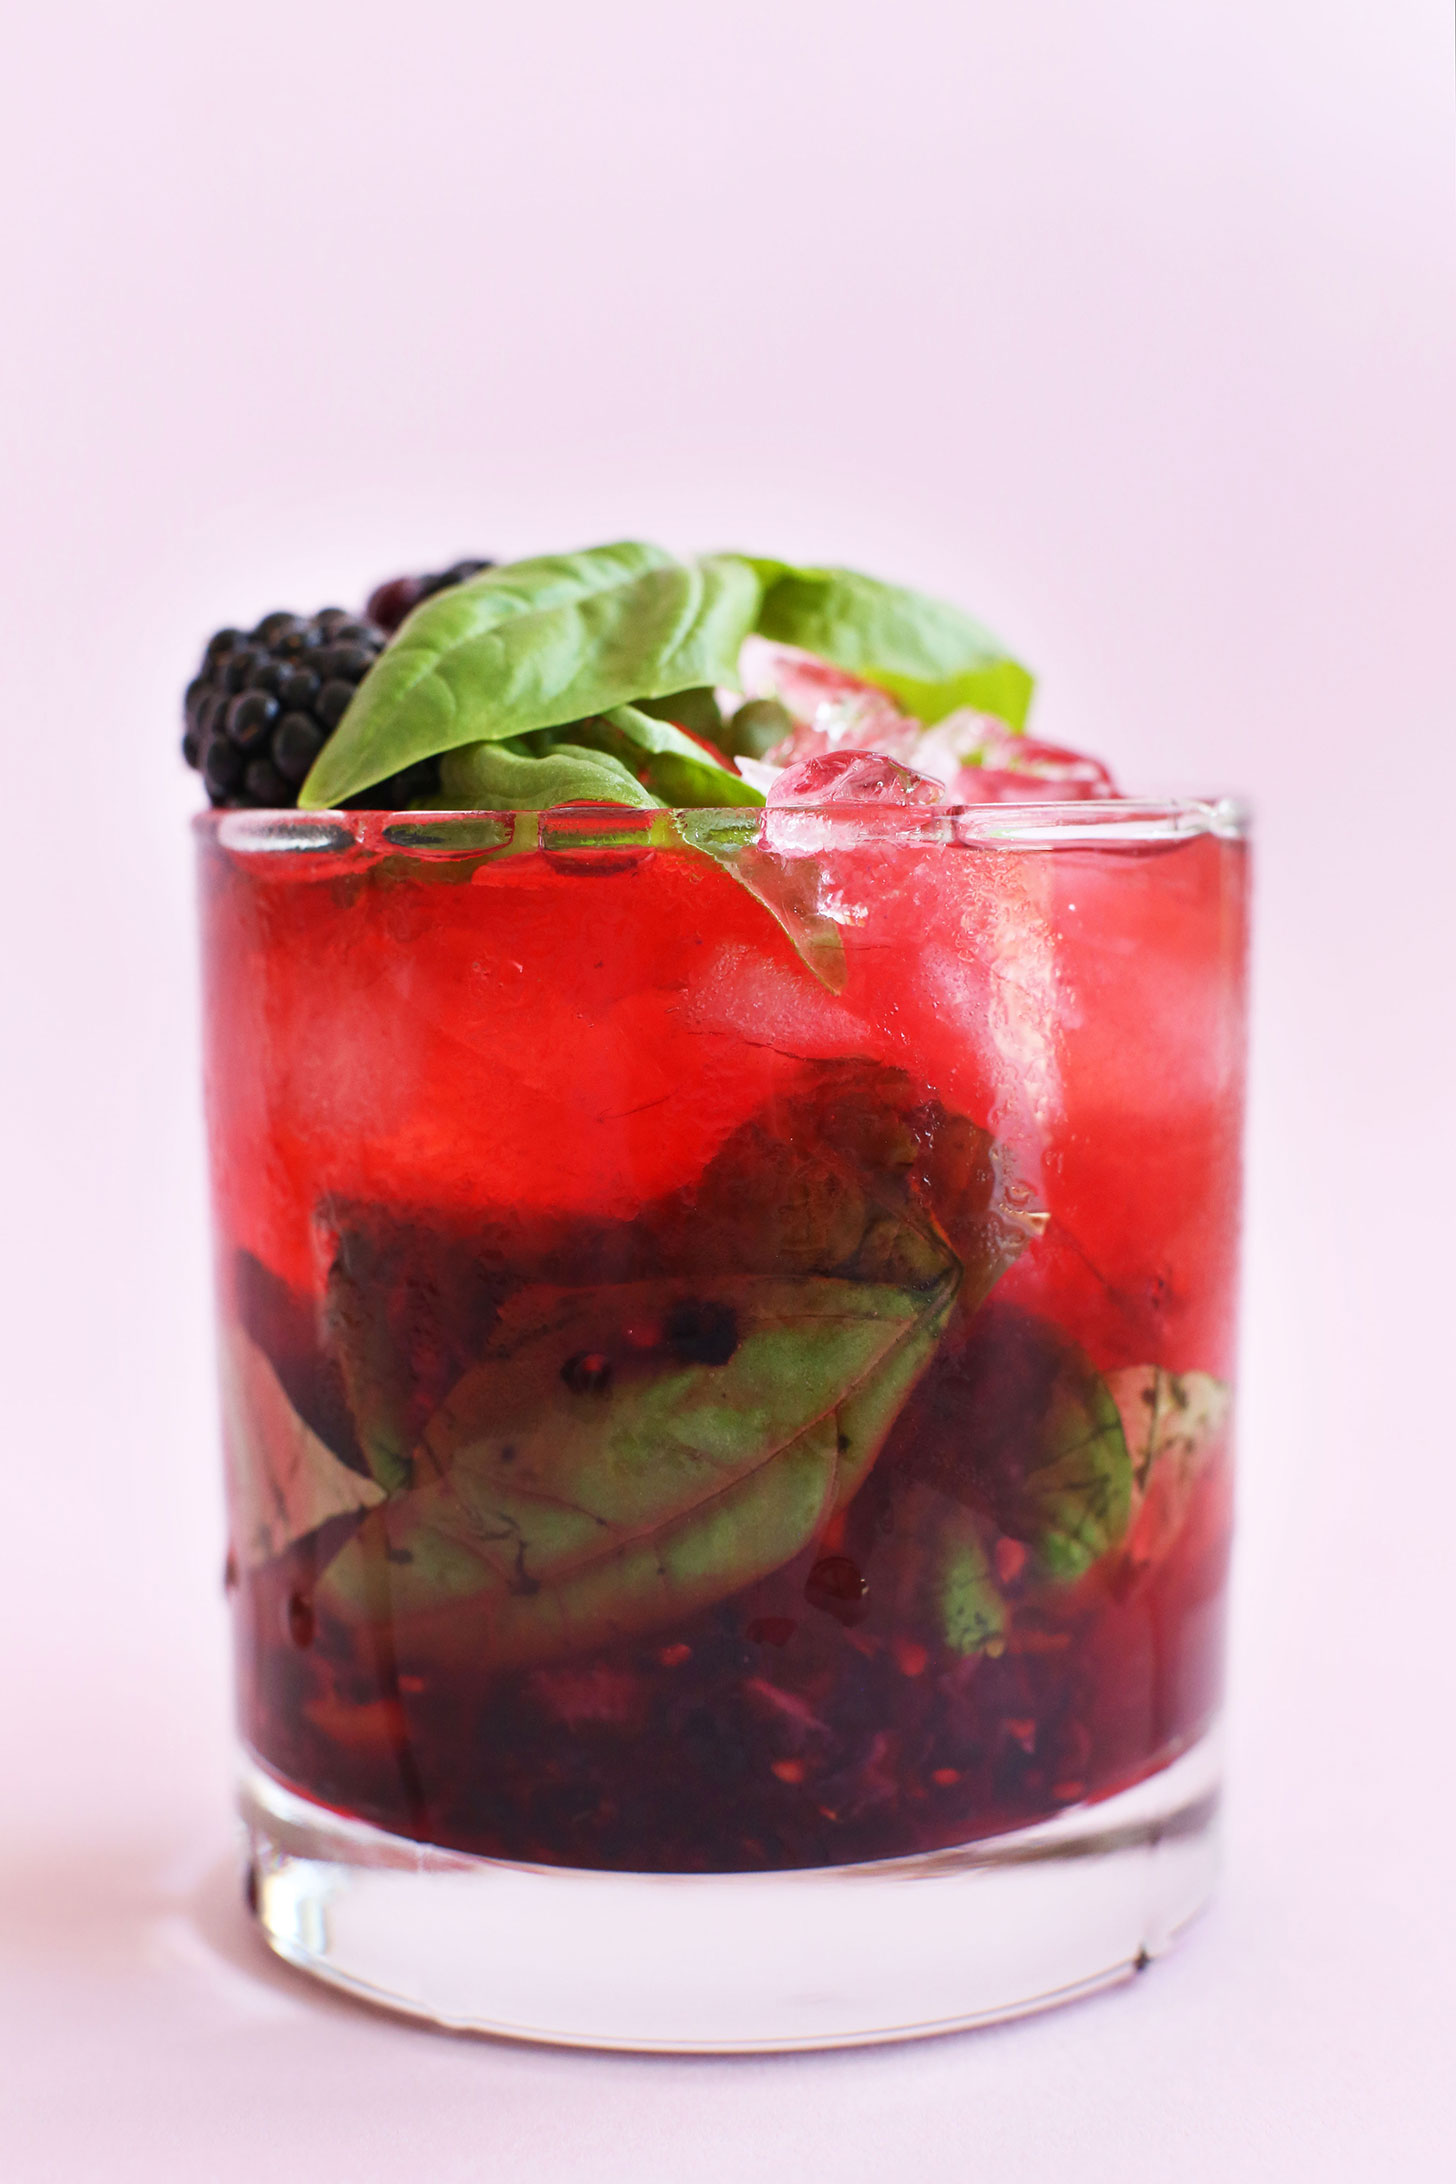 Glass of our Summery Blackberry Basil Mojito recipe for a refreshing, tart, and sweet cocktail